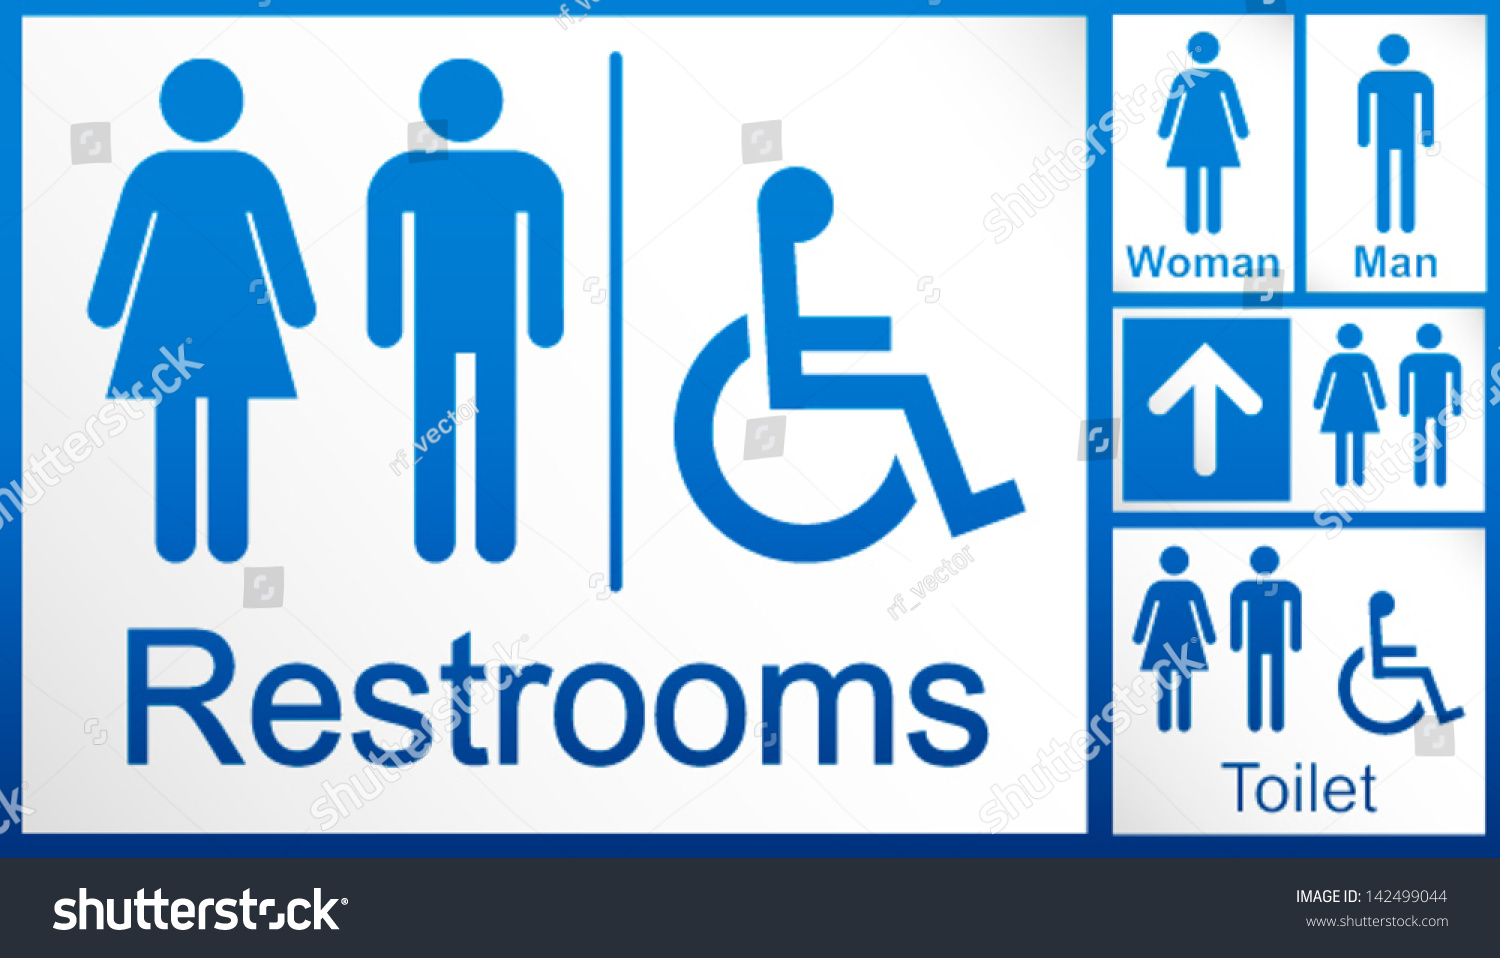 Printable bathroom sign - Mens And Womens Disabled Restroom Signage Set Men S Boy S Women S Printable Restroom